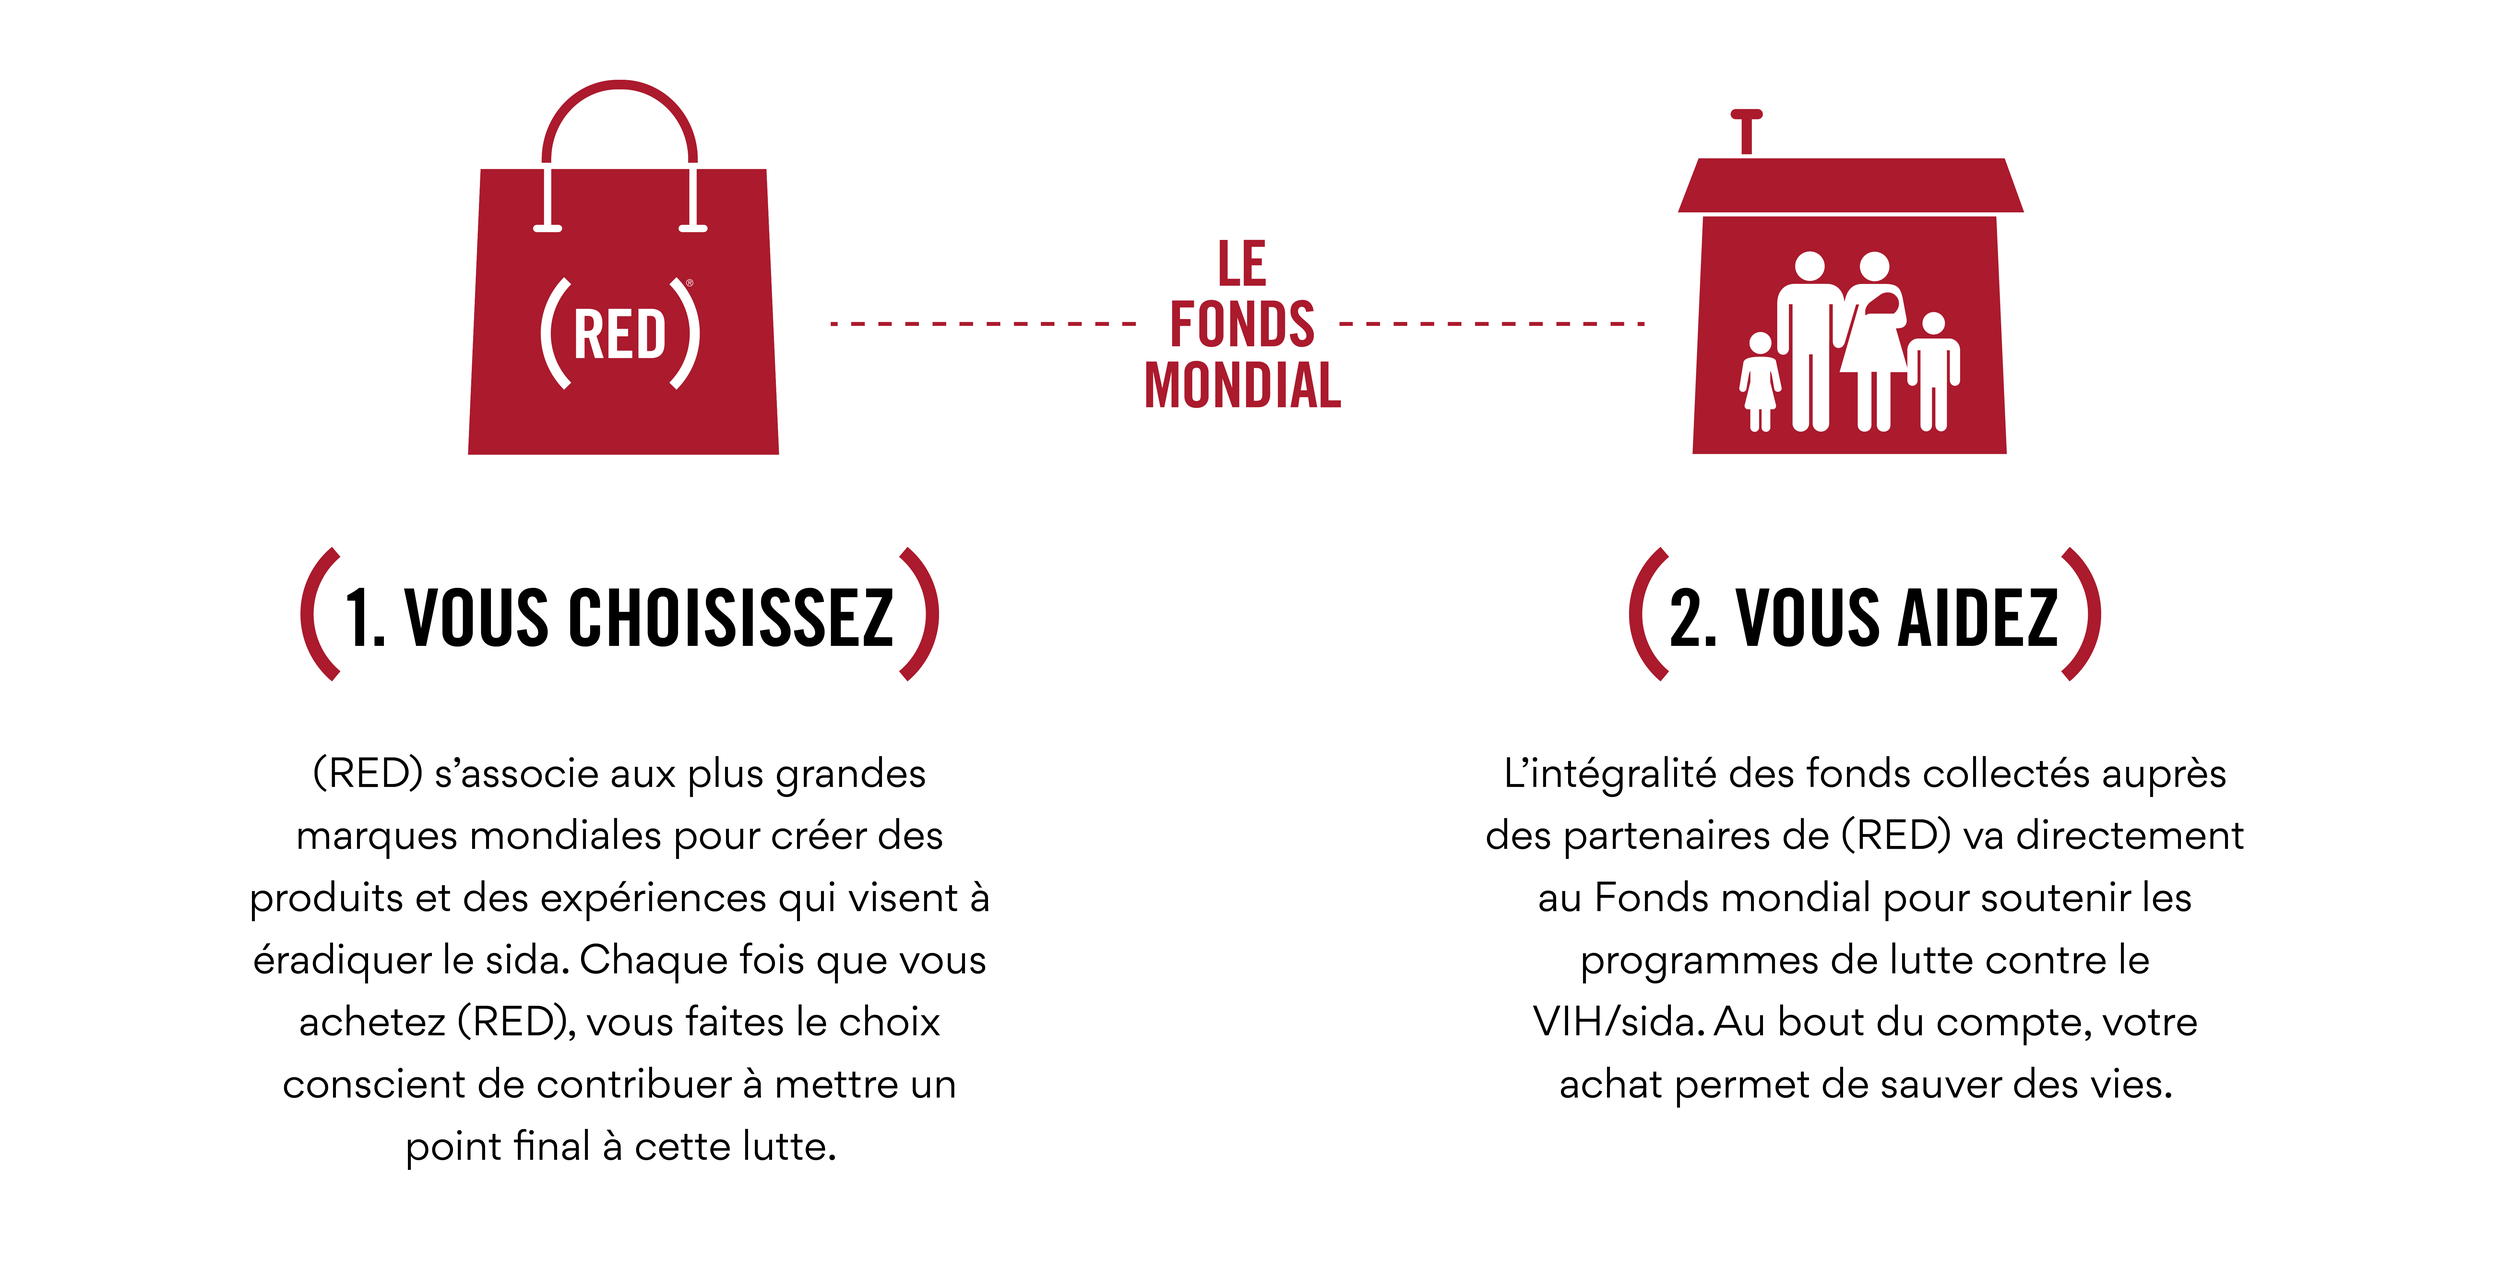 HowREDWorks_Two-step how red works_inFrench.png